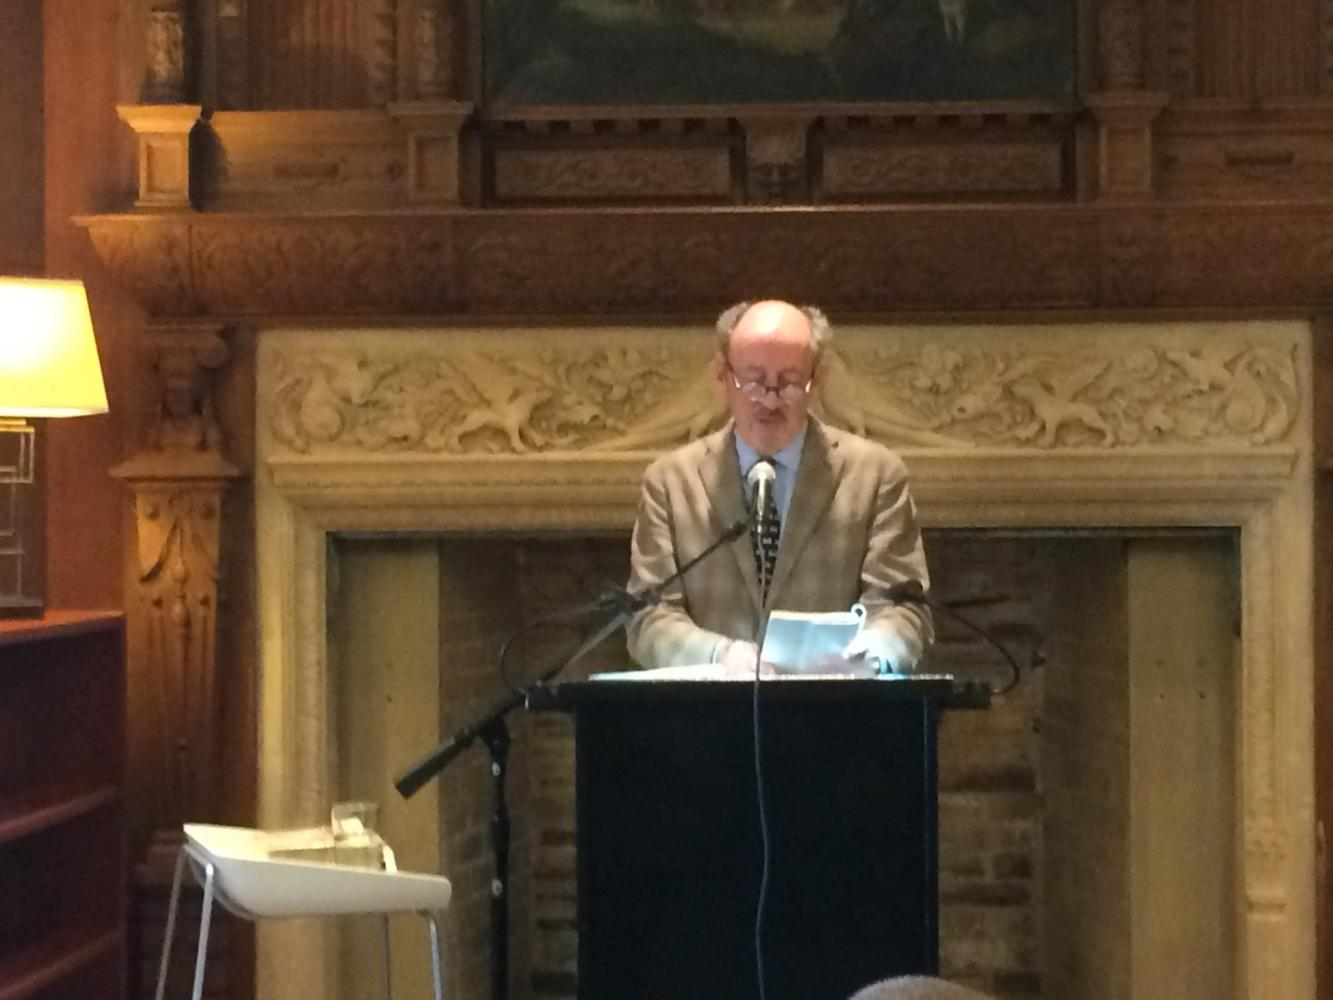 Former U.S. Poet Laureate Billy Collins reads a selection of his work at an evening event for the school community. Collins, famous for his simple poems with gentle critiques of everyday life, visited campus today.